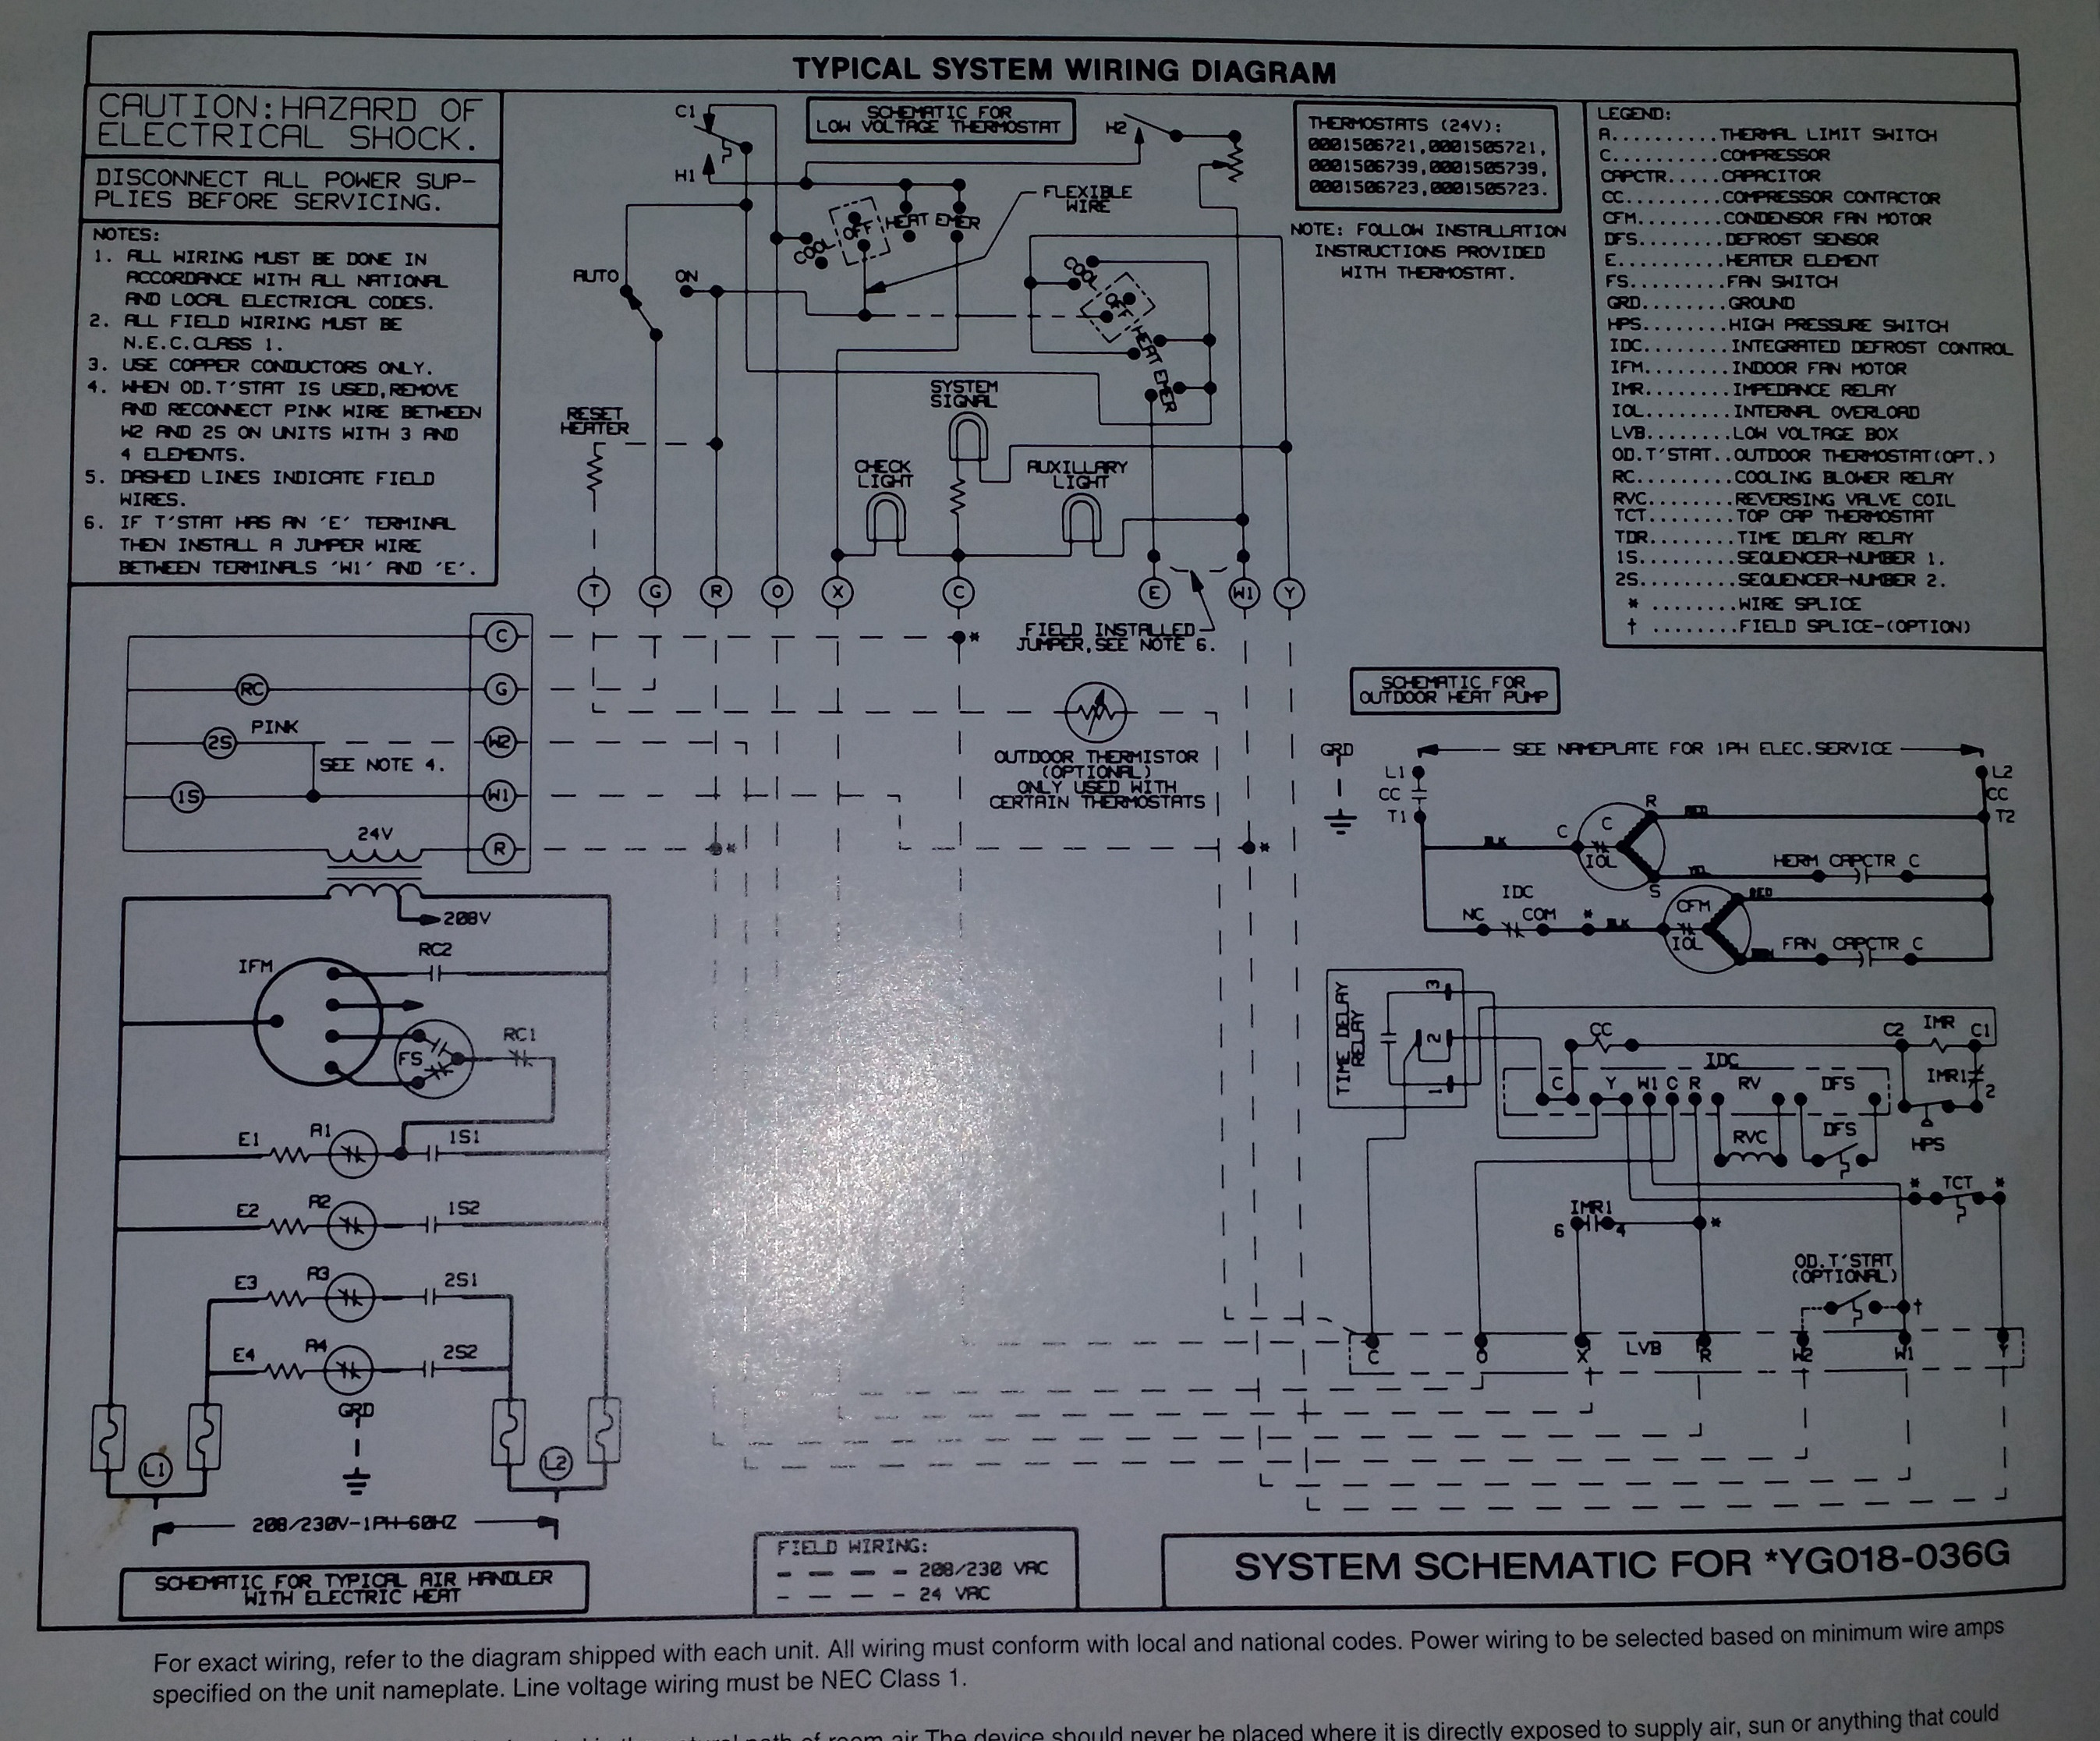 Chase Mortgage Wiring Instructions : Lux thermostat tx tsa wiring diagram for heat pump